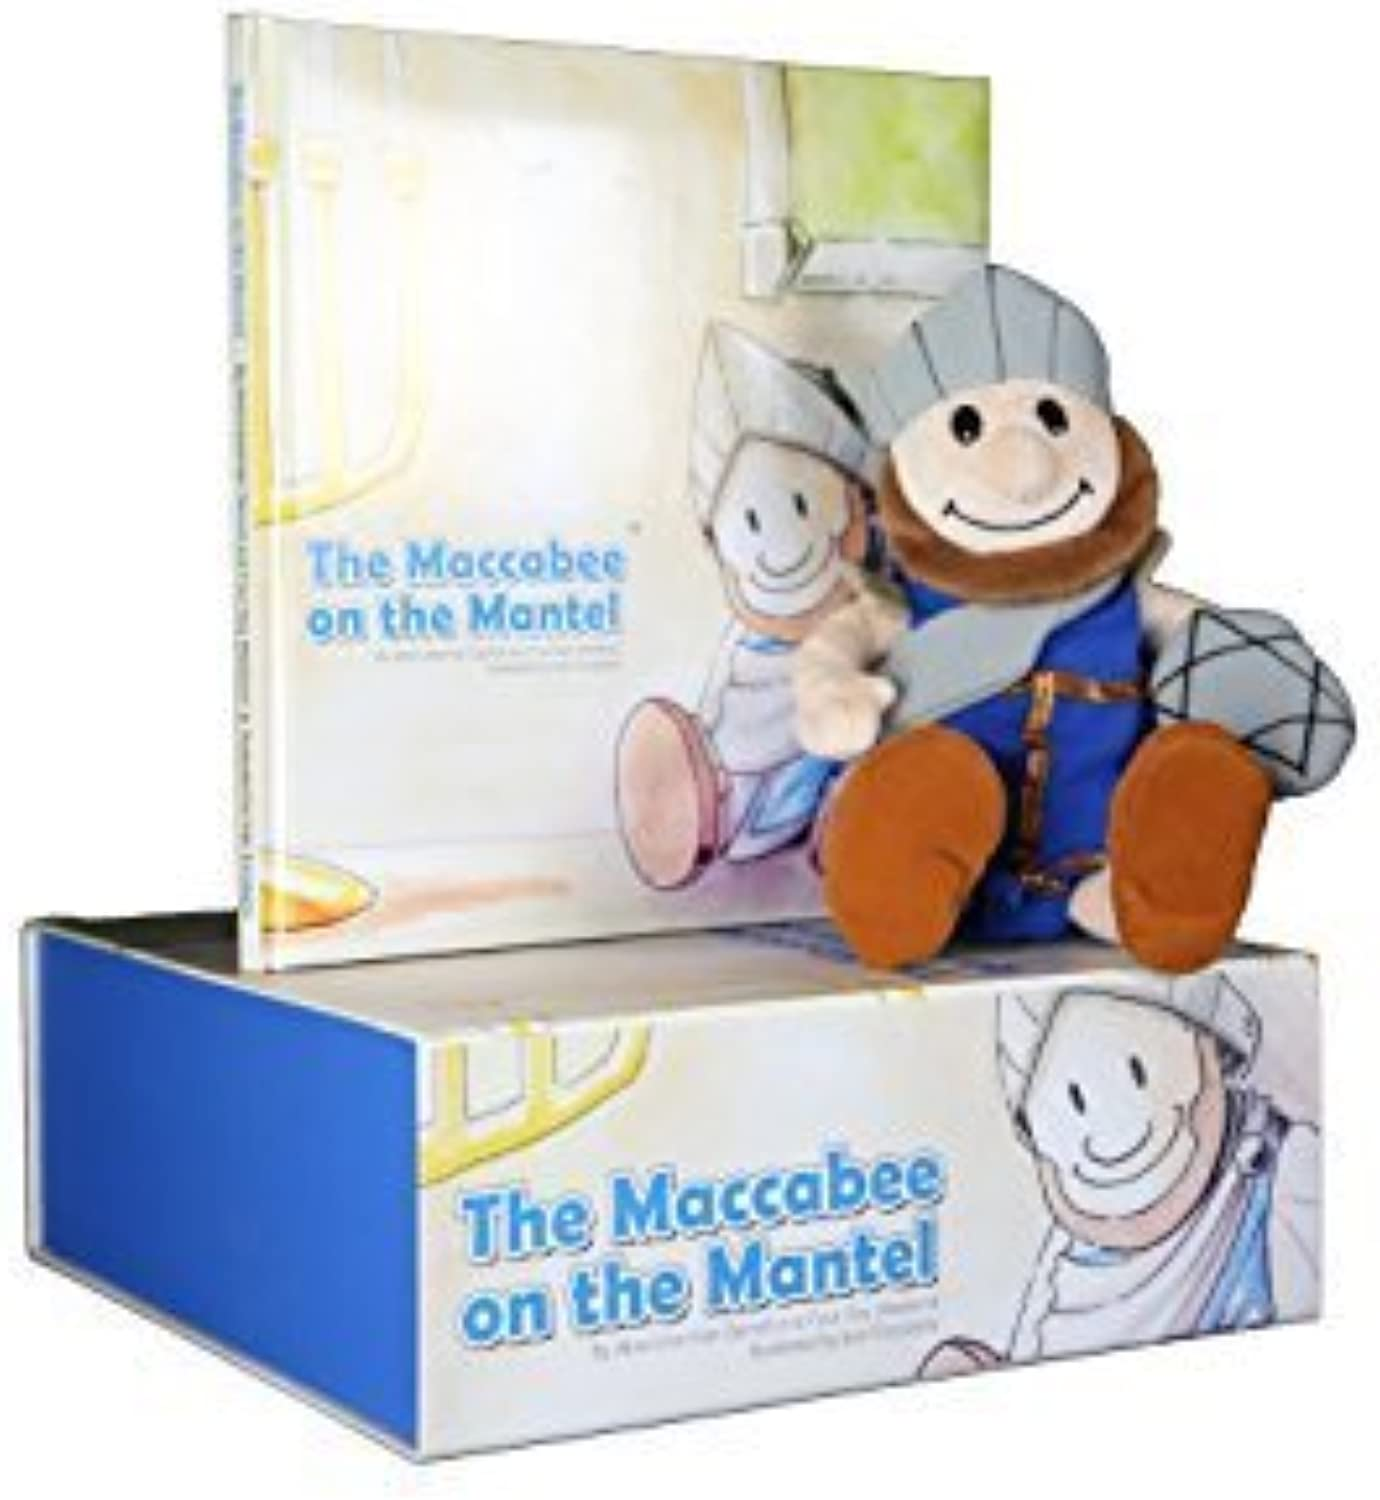 Maccabee on the Mantel Book and Plush Gift Box Set by Maccabee on the Mantel